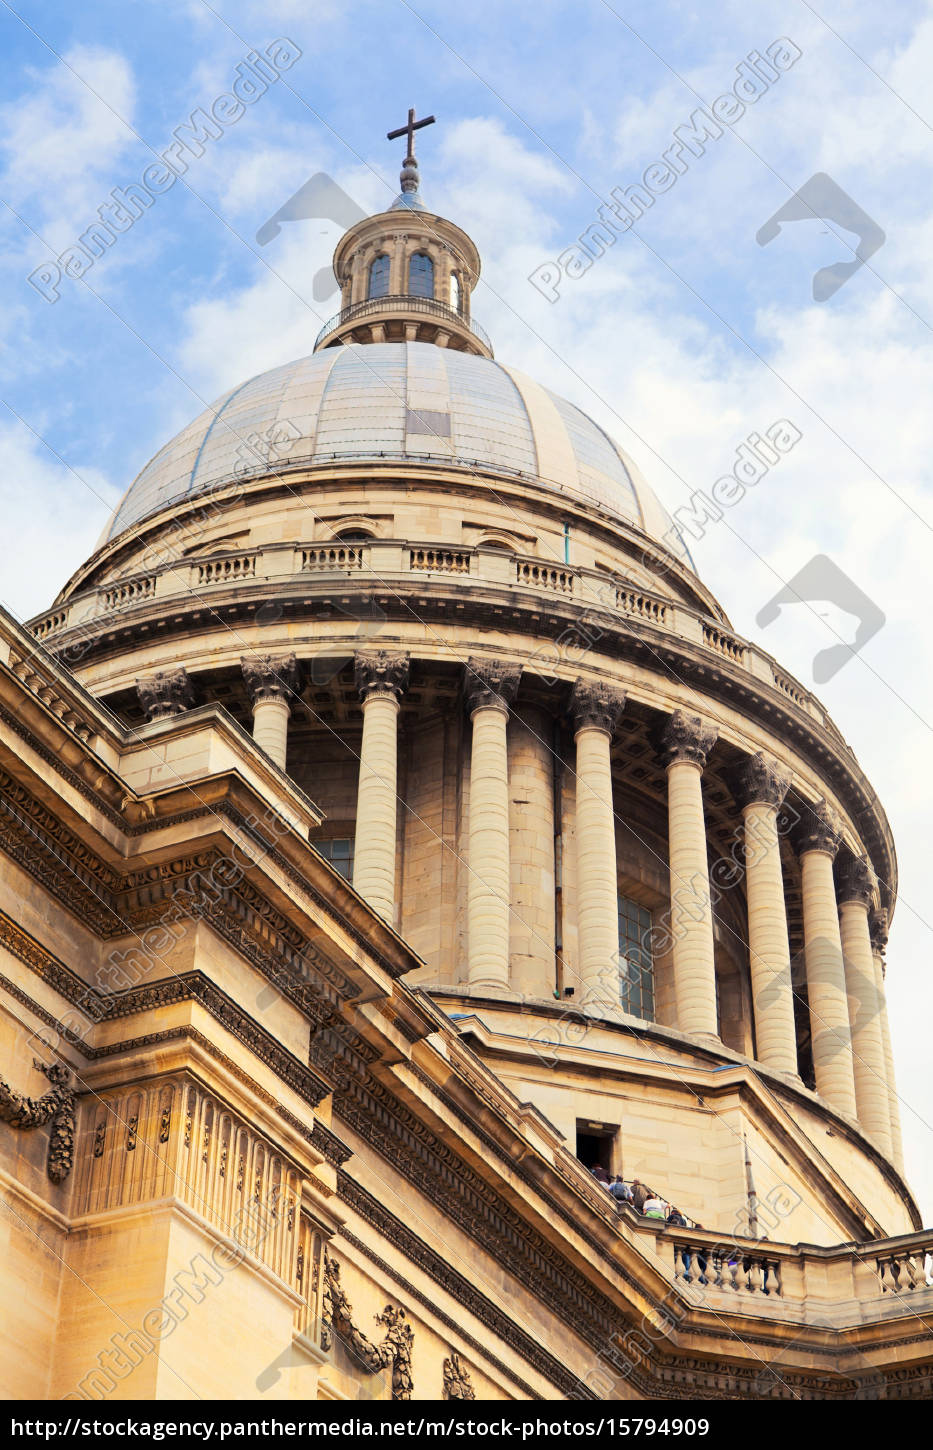 pantheon, , paris, pantheon, , paris, pantheon, , paris, pantheon, , paris - 15794909